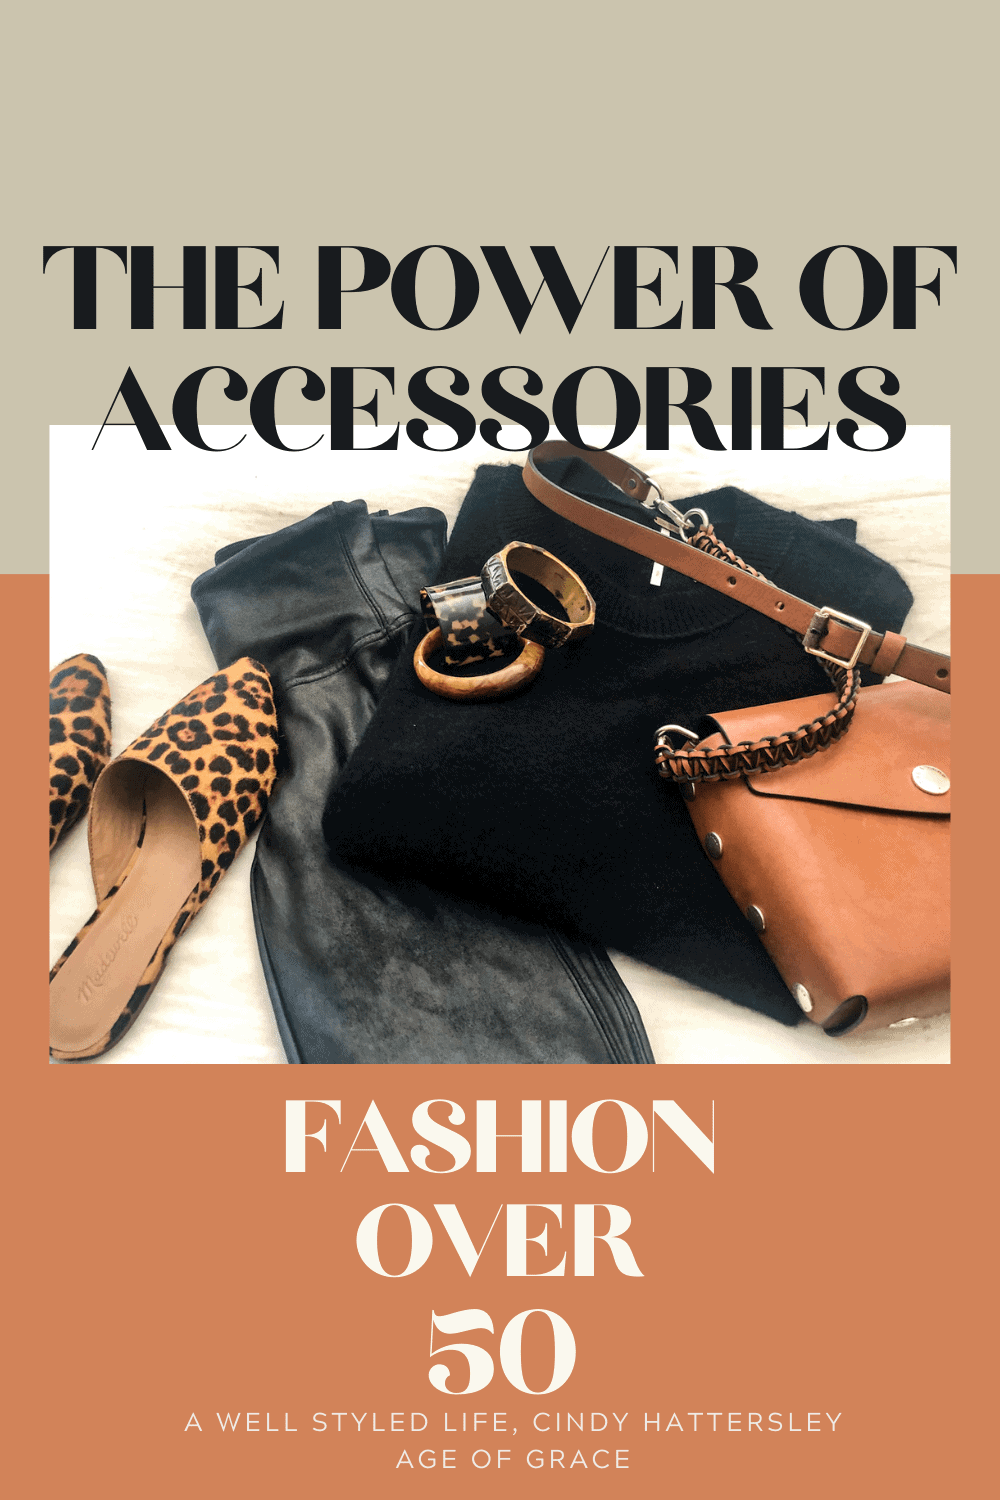 THE POWER OF ACCESSORIES a well styled life, cindy hattersley, age of grace